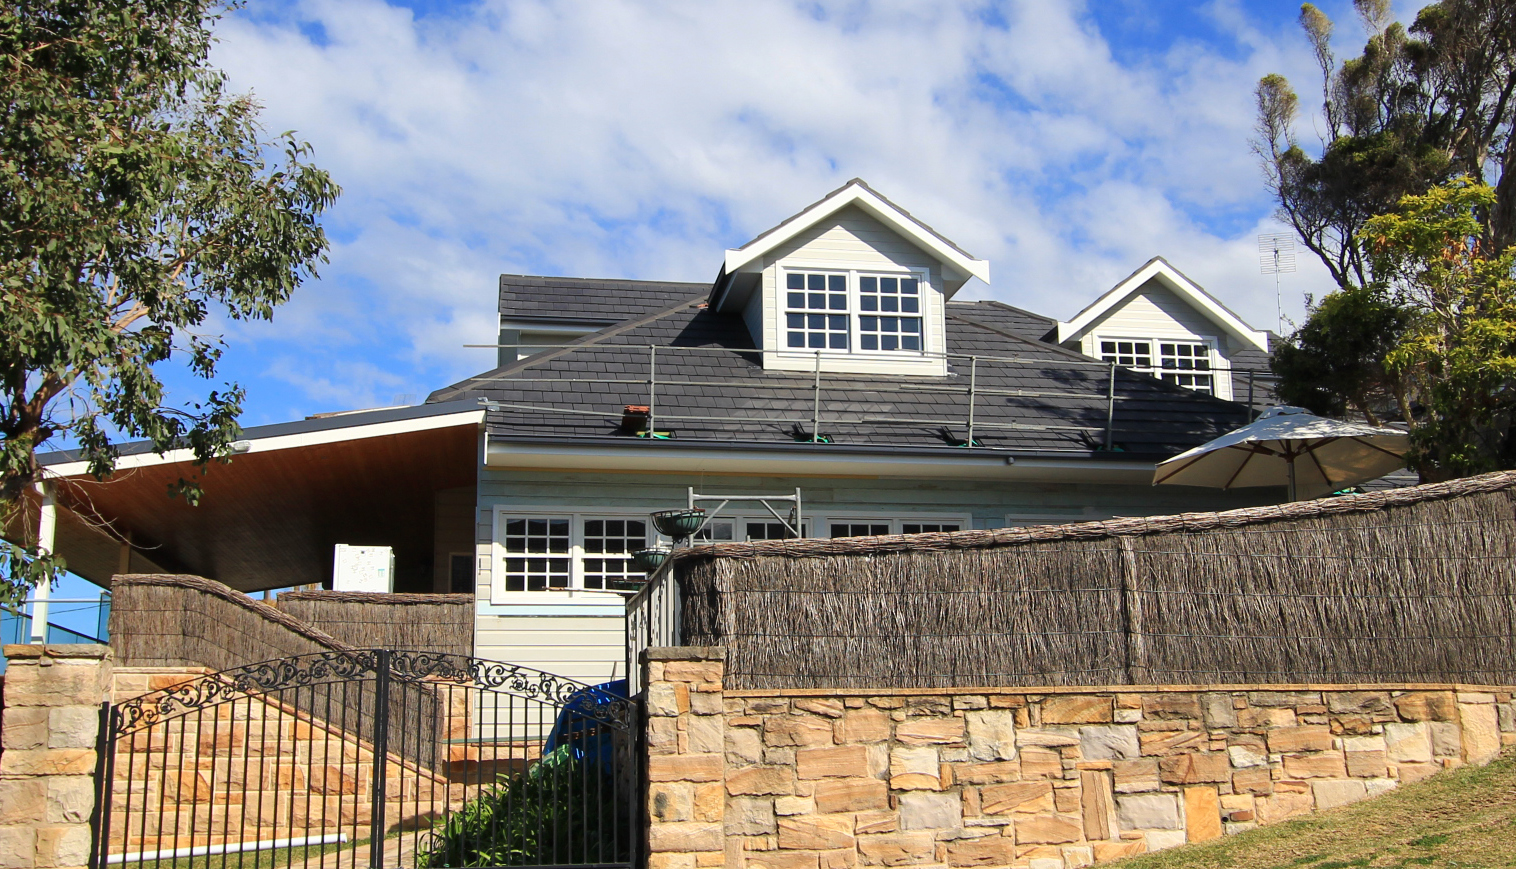 Roof fencing is an important condition for safety on the roof